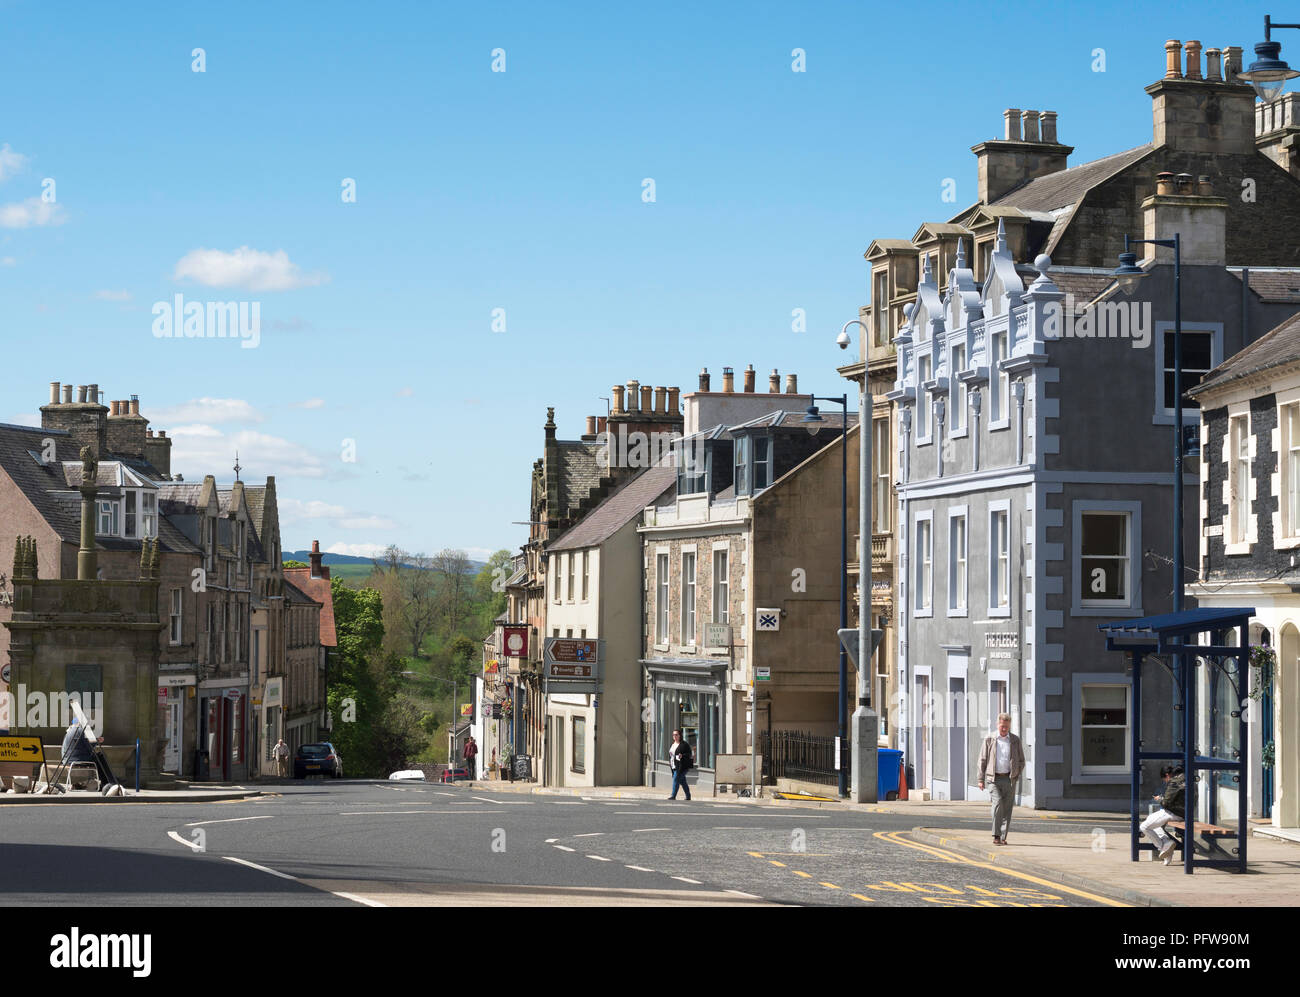 Selkirk town centre, Scottish Borders, Scotland, UK - Stock Image